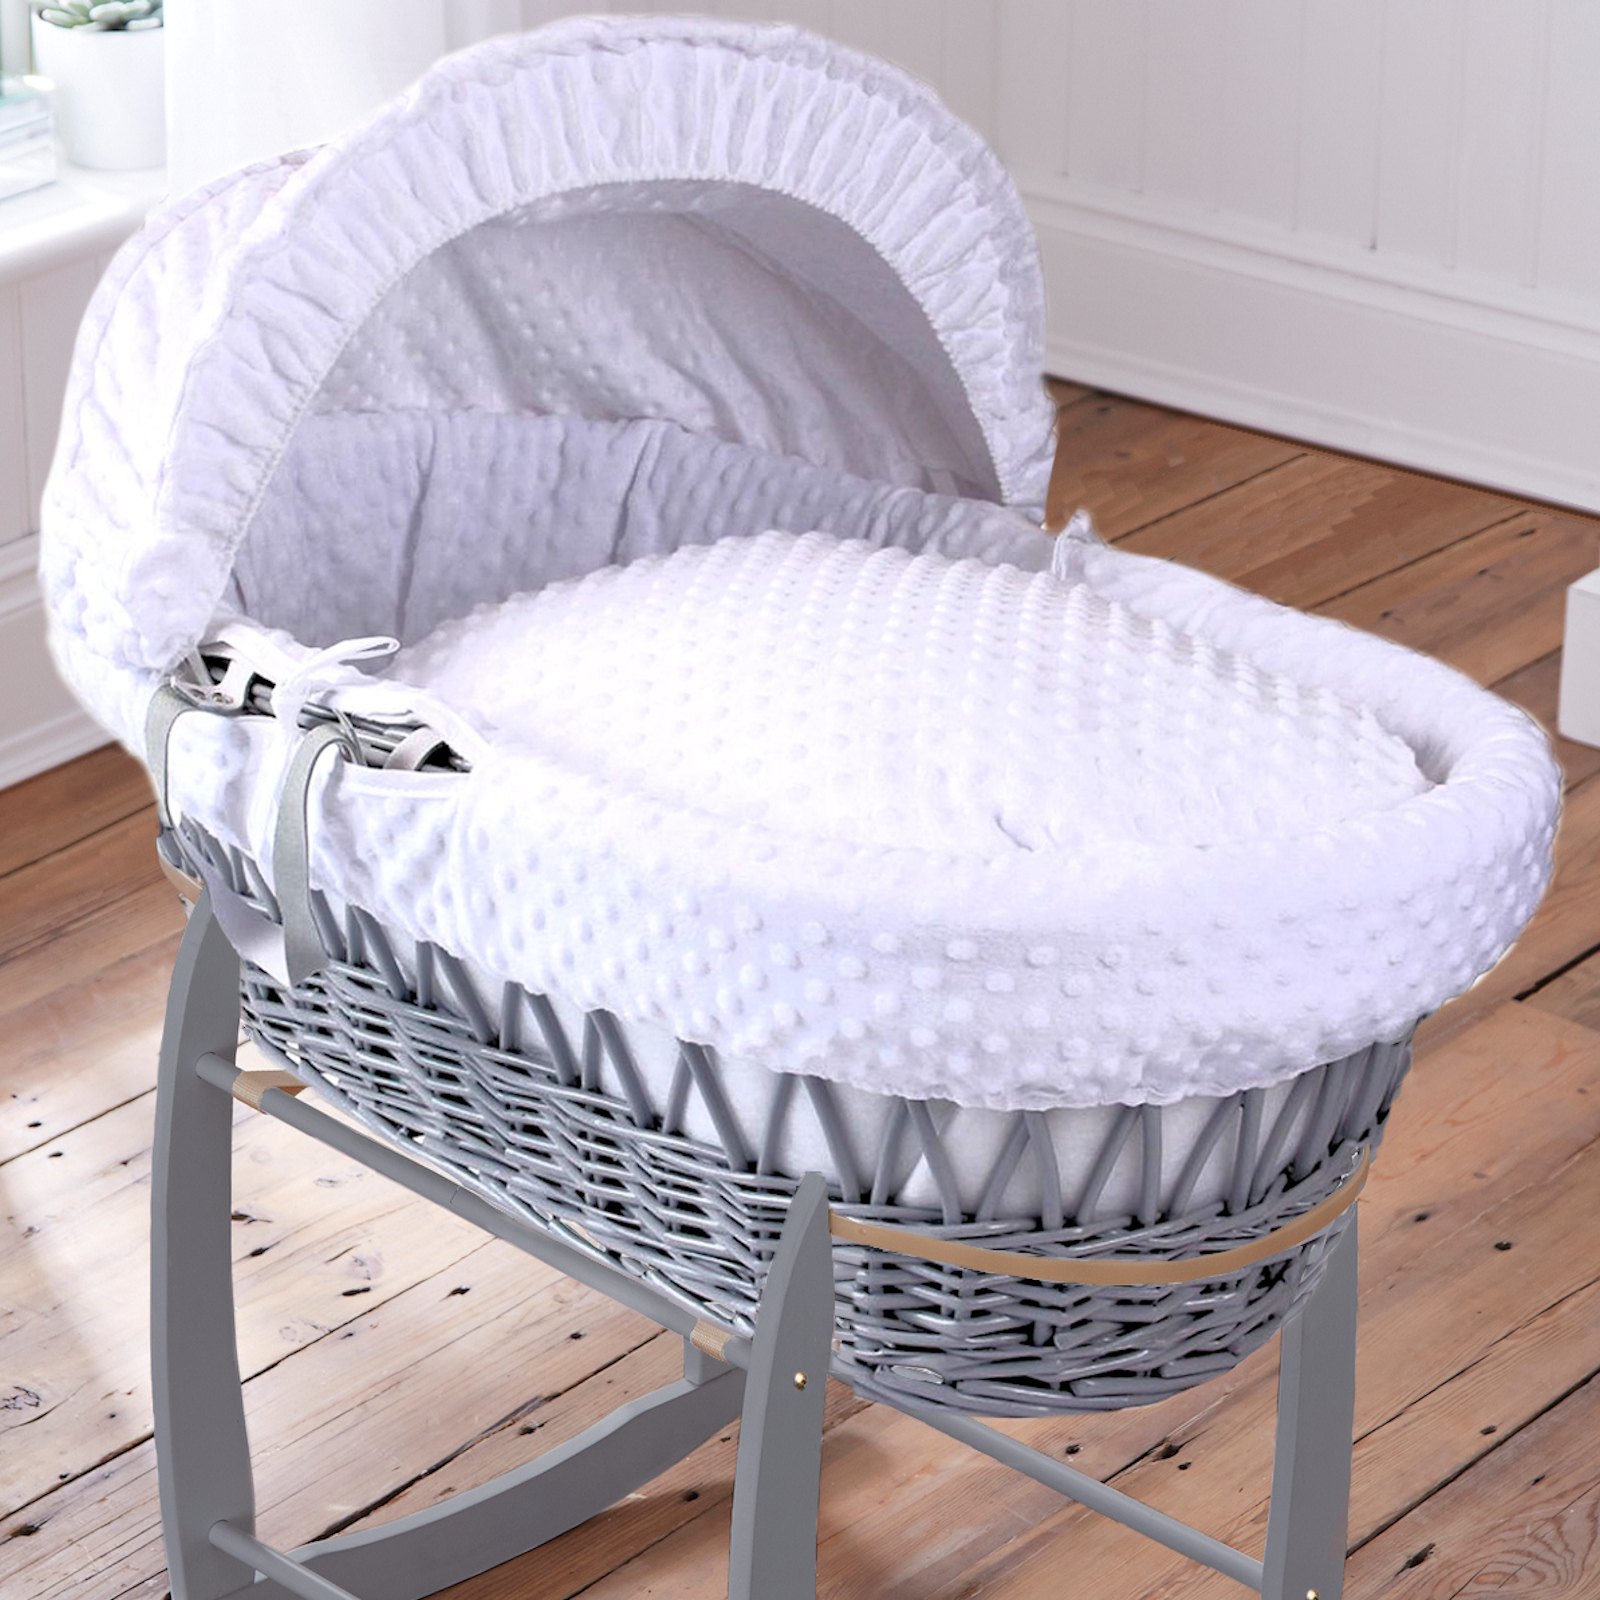 Baby Cots Next Clair De Lune Deluxe Padded Grey Wicker Baby Moses Basket